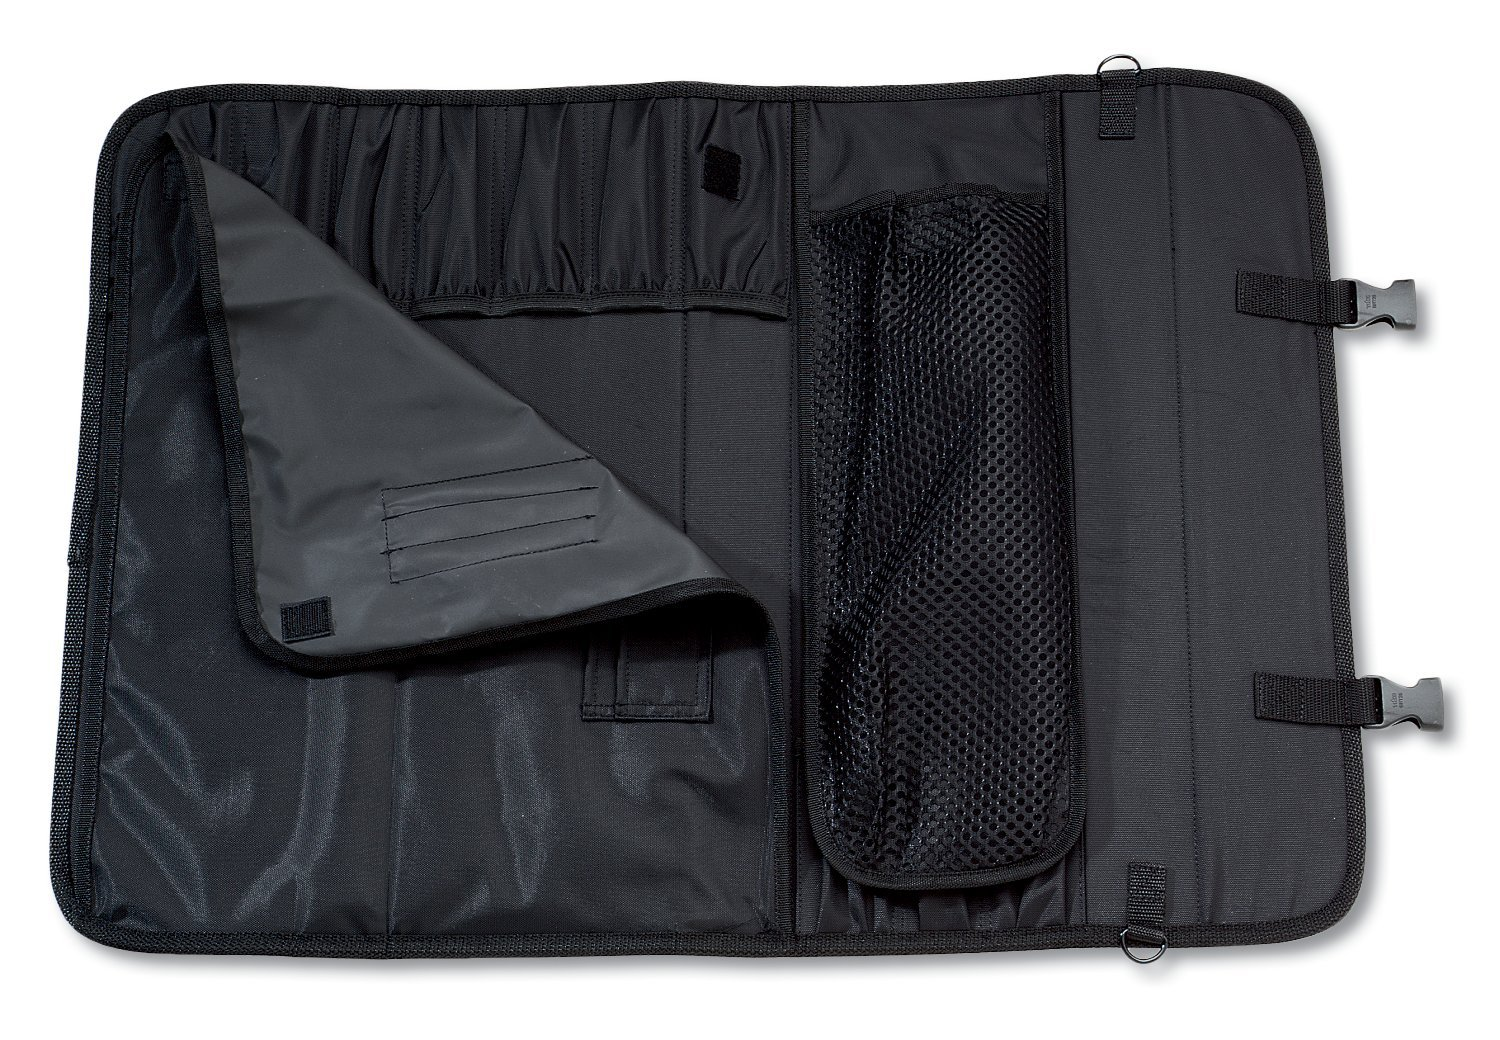 Victorinox Knife Case for 10 Knives, Black by Victorinox